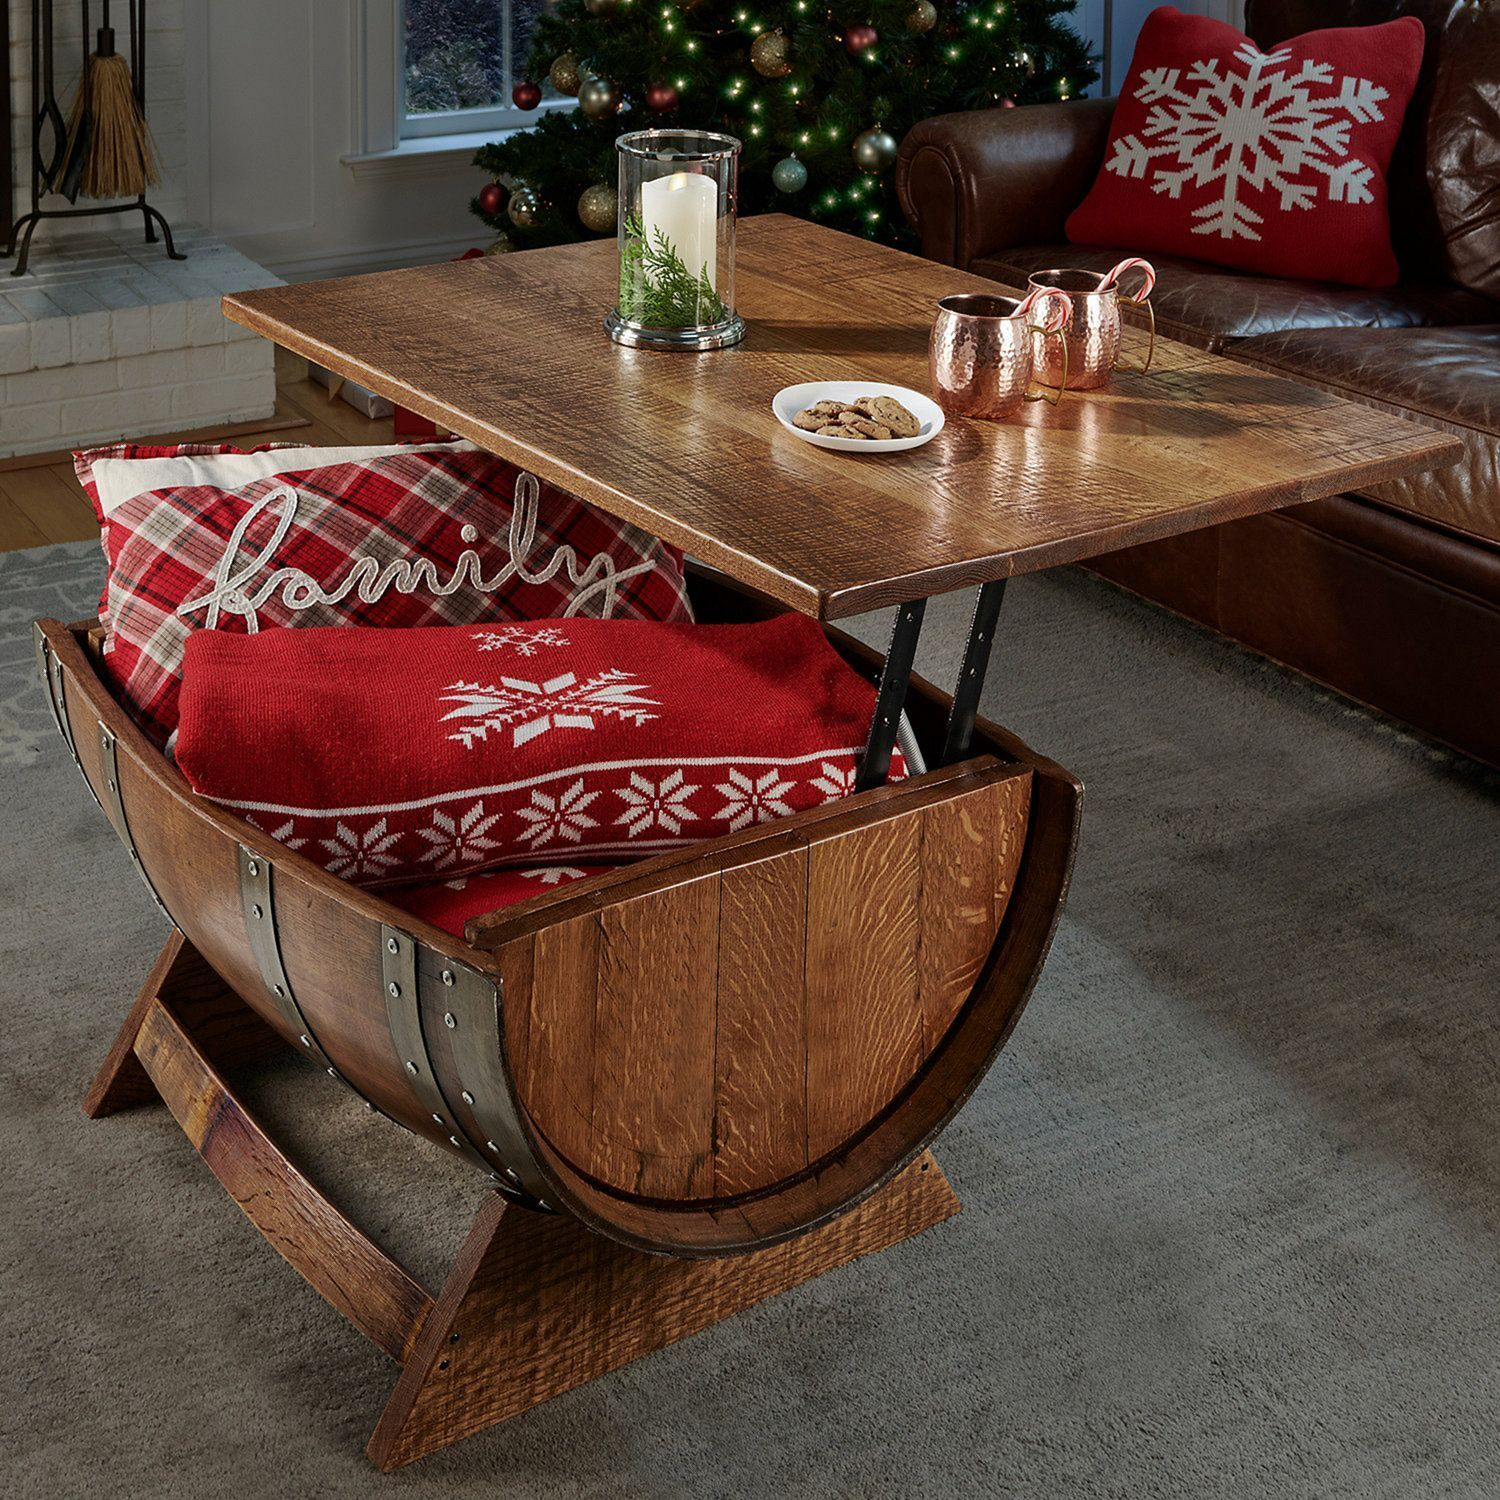 10 Cool Diy Barrel Coffee Table Ideas For Your Living Room In 2020 Wine Barrel Coffee Table Barrel Coffee Table Whiskey Barrel Furniture